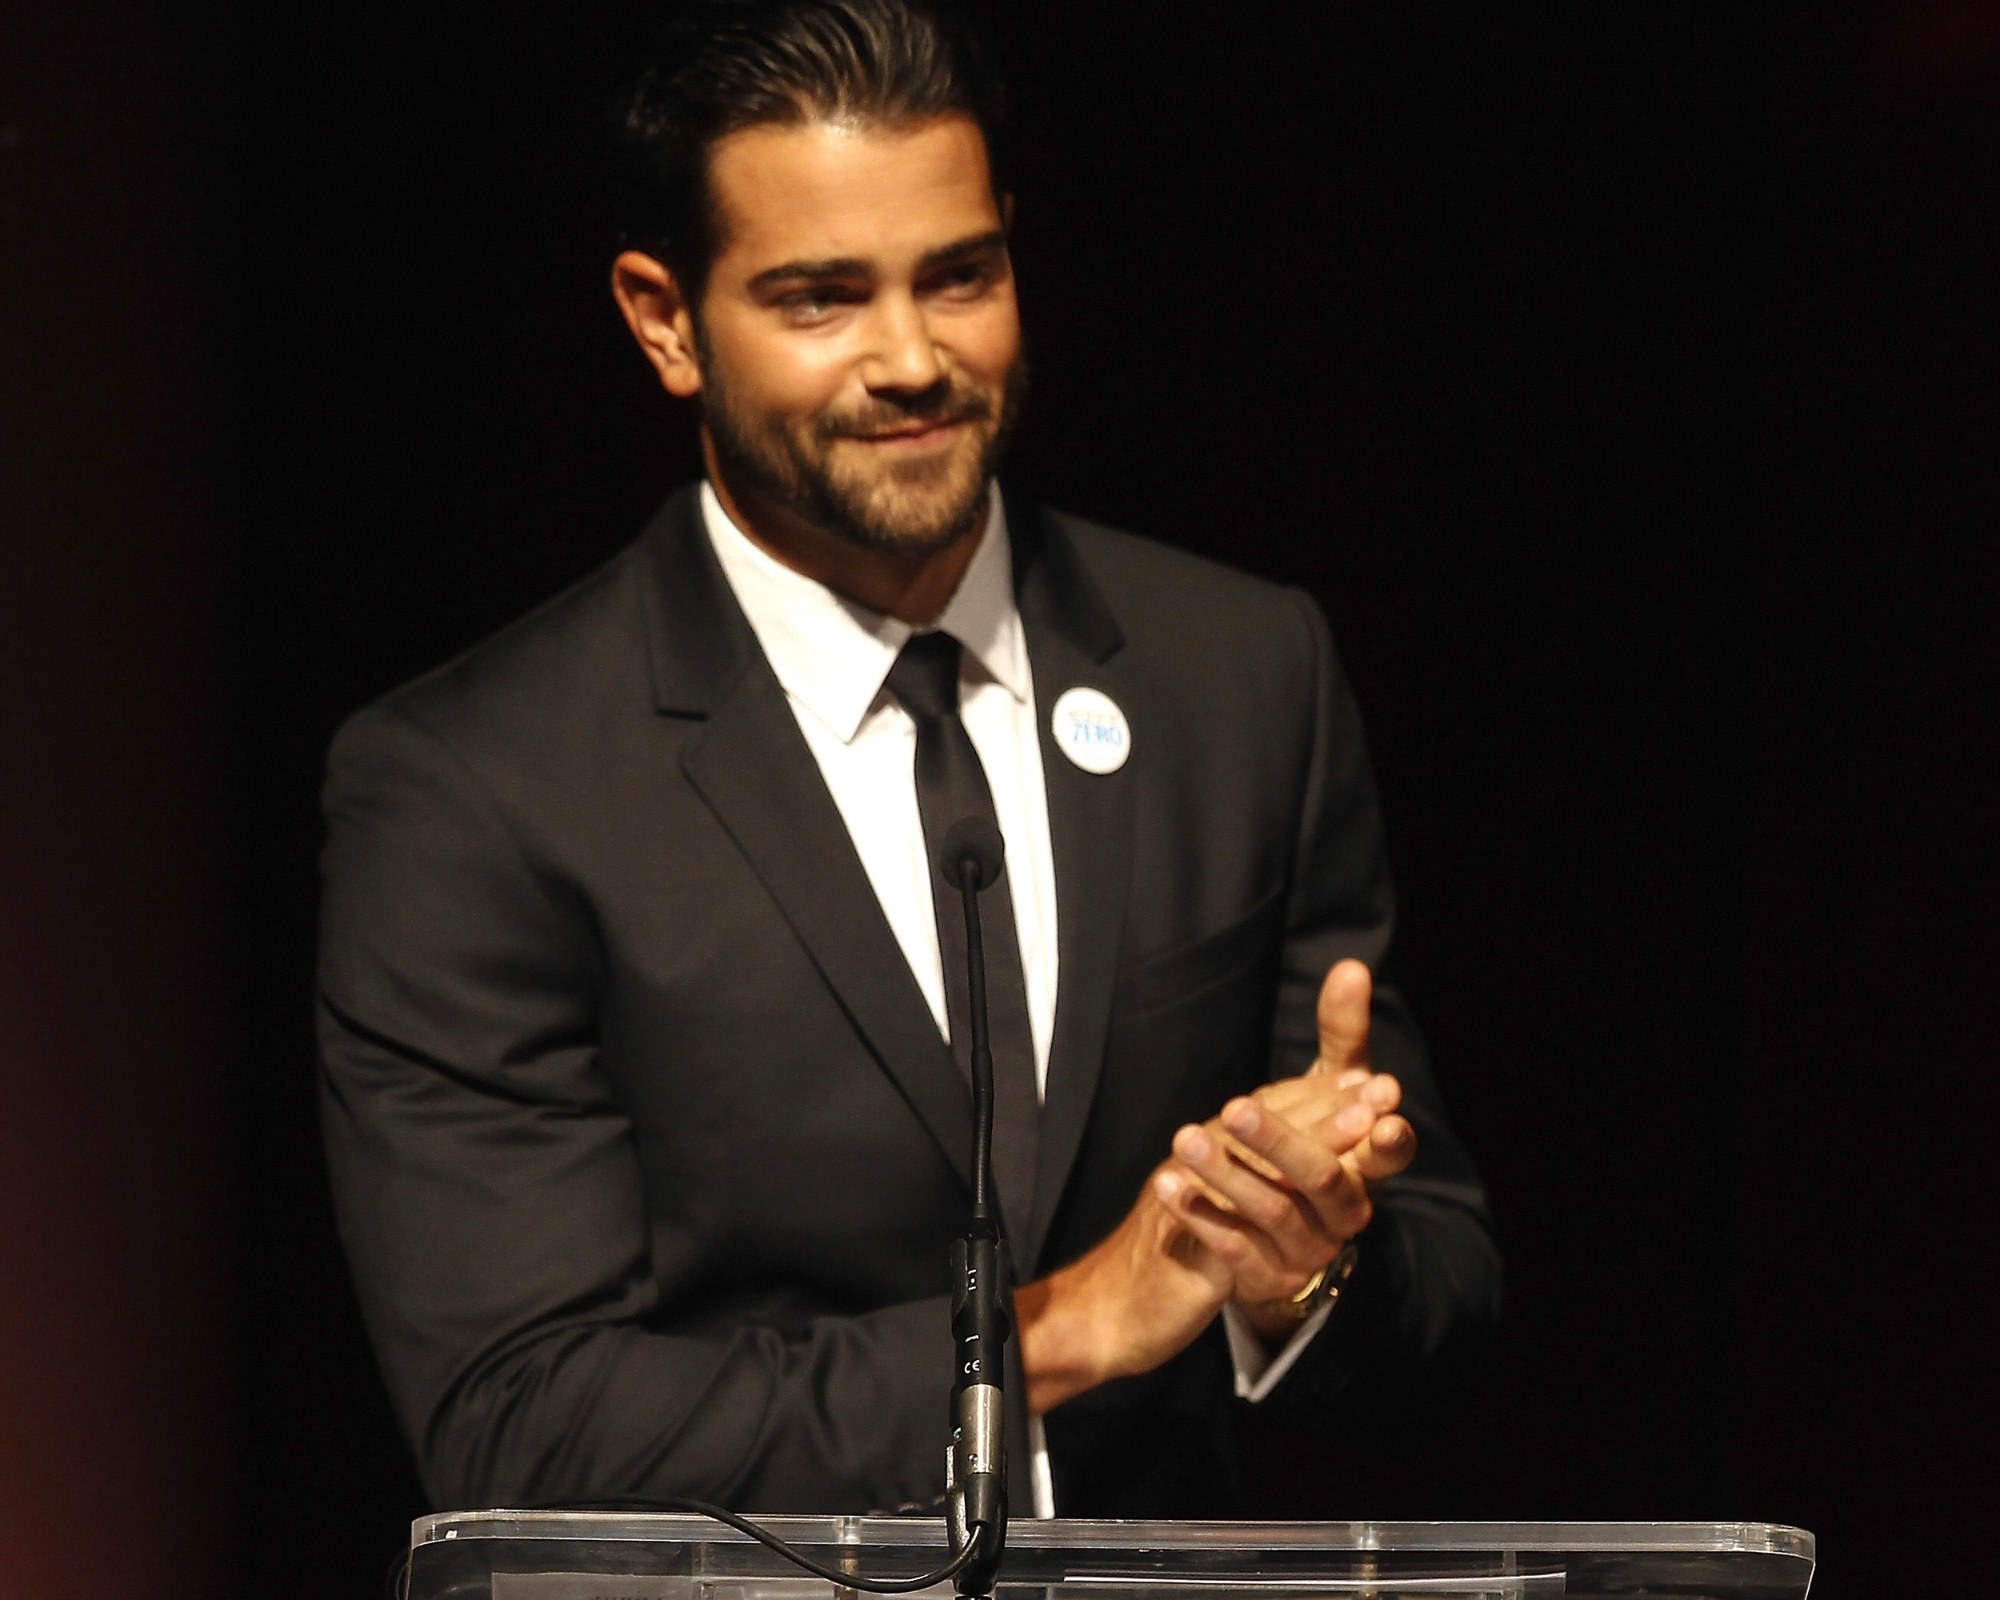 Jesse Metcalfe emcees The UNICEF Audrey Hepburn® Society Ball at Wortham Center on September 6, 2013 in Houston, Texas.(Photo by Bob Levey/Getty Images for UNICEF)